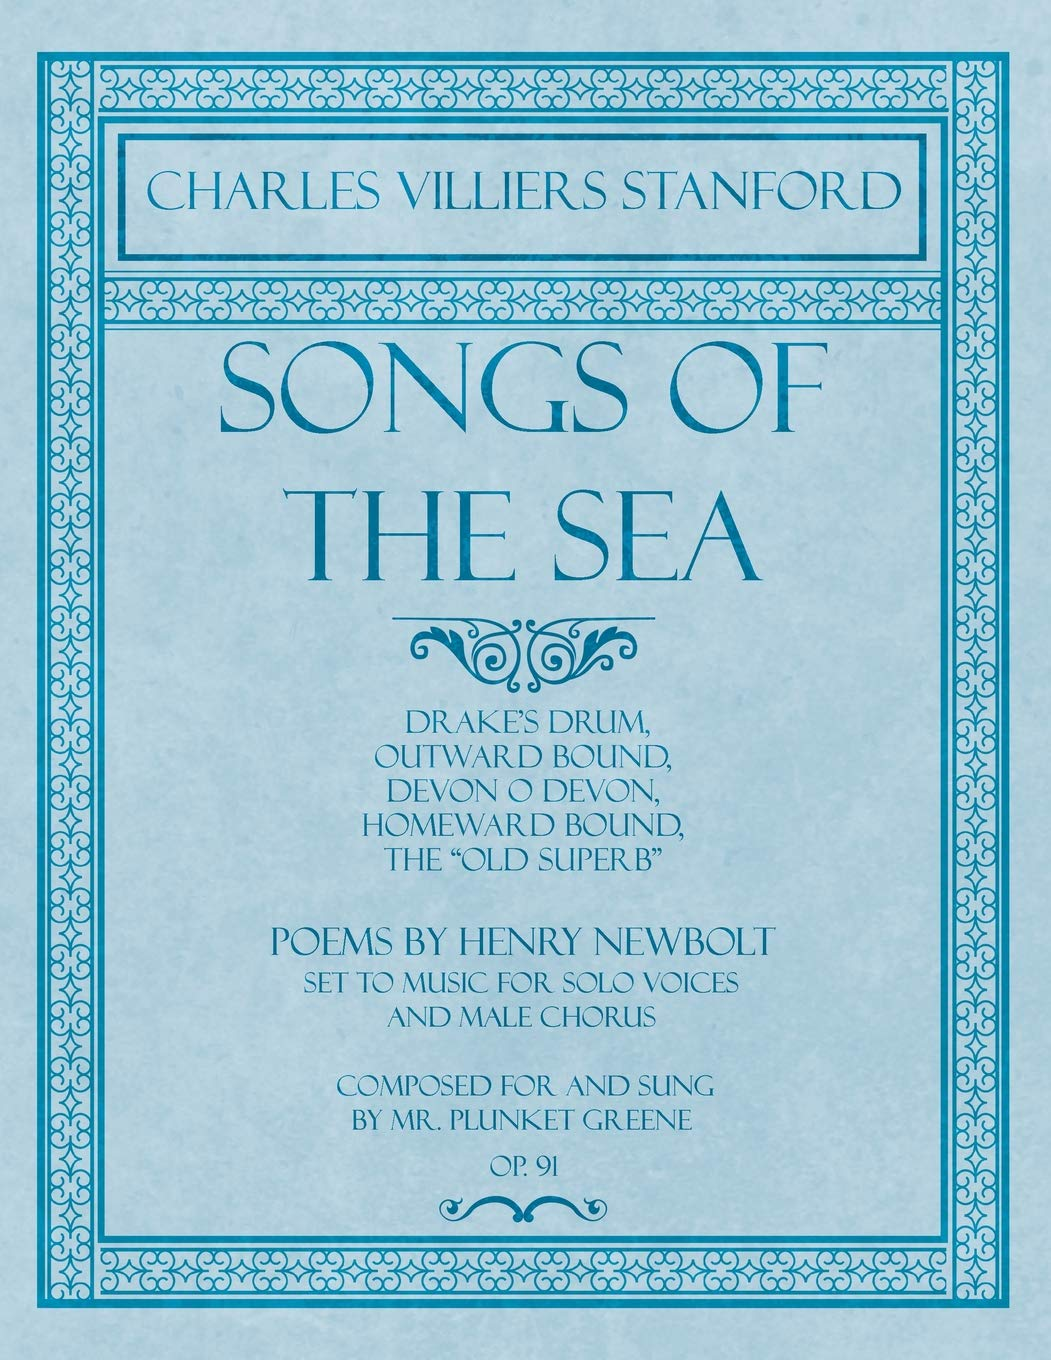 Composer: Charles Villiers Stanford, Sir (1852 - 1924)